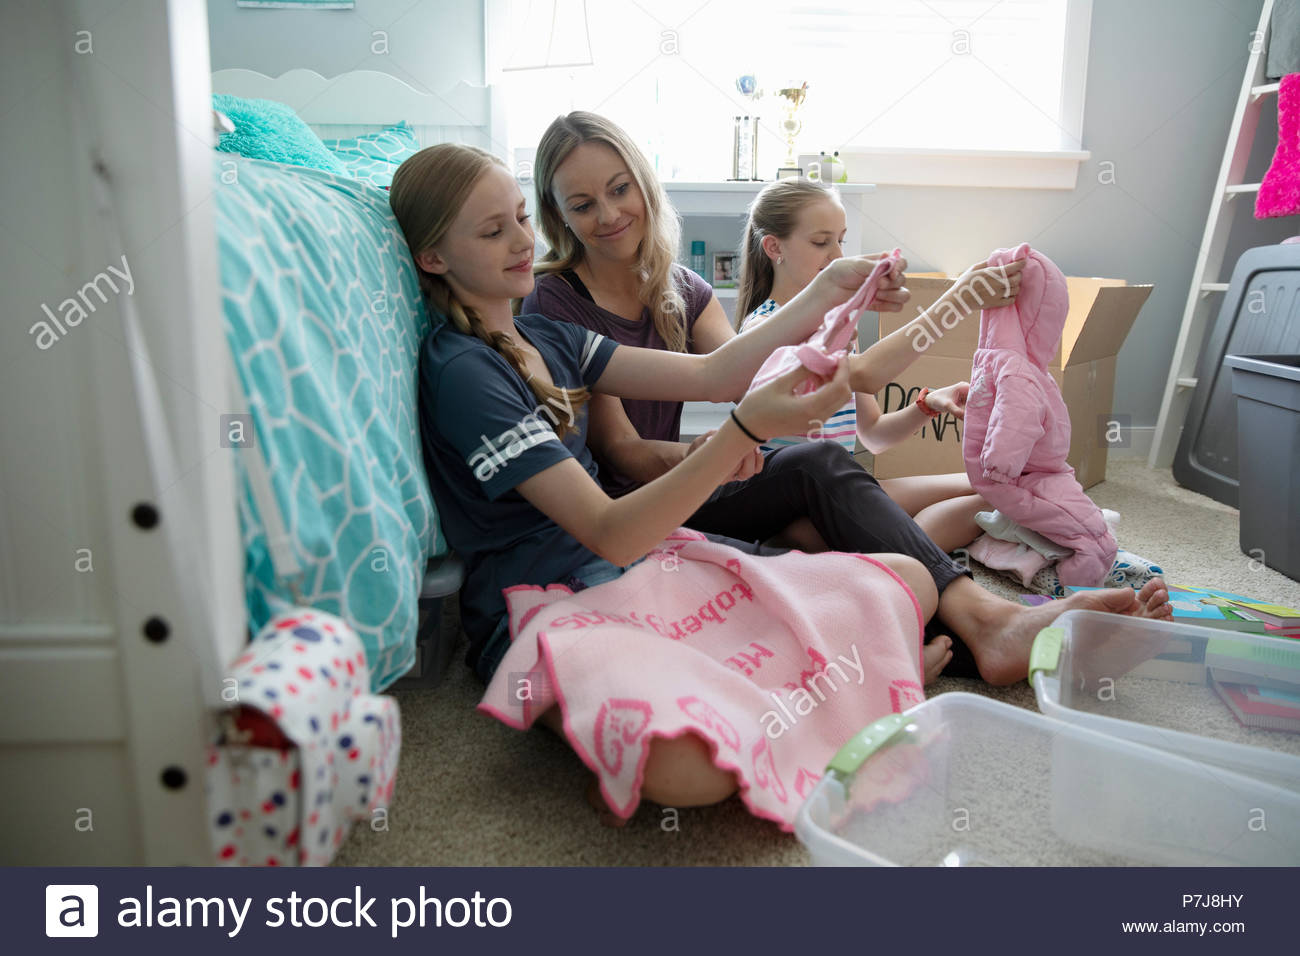 Mother and daughters donating baby clothes in bedroom - Stock Image